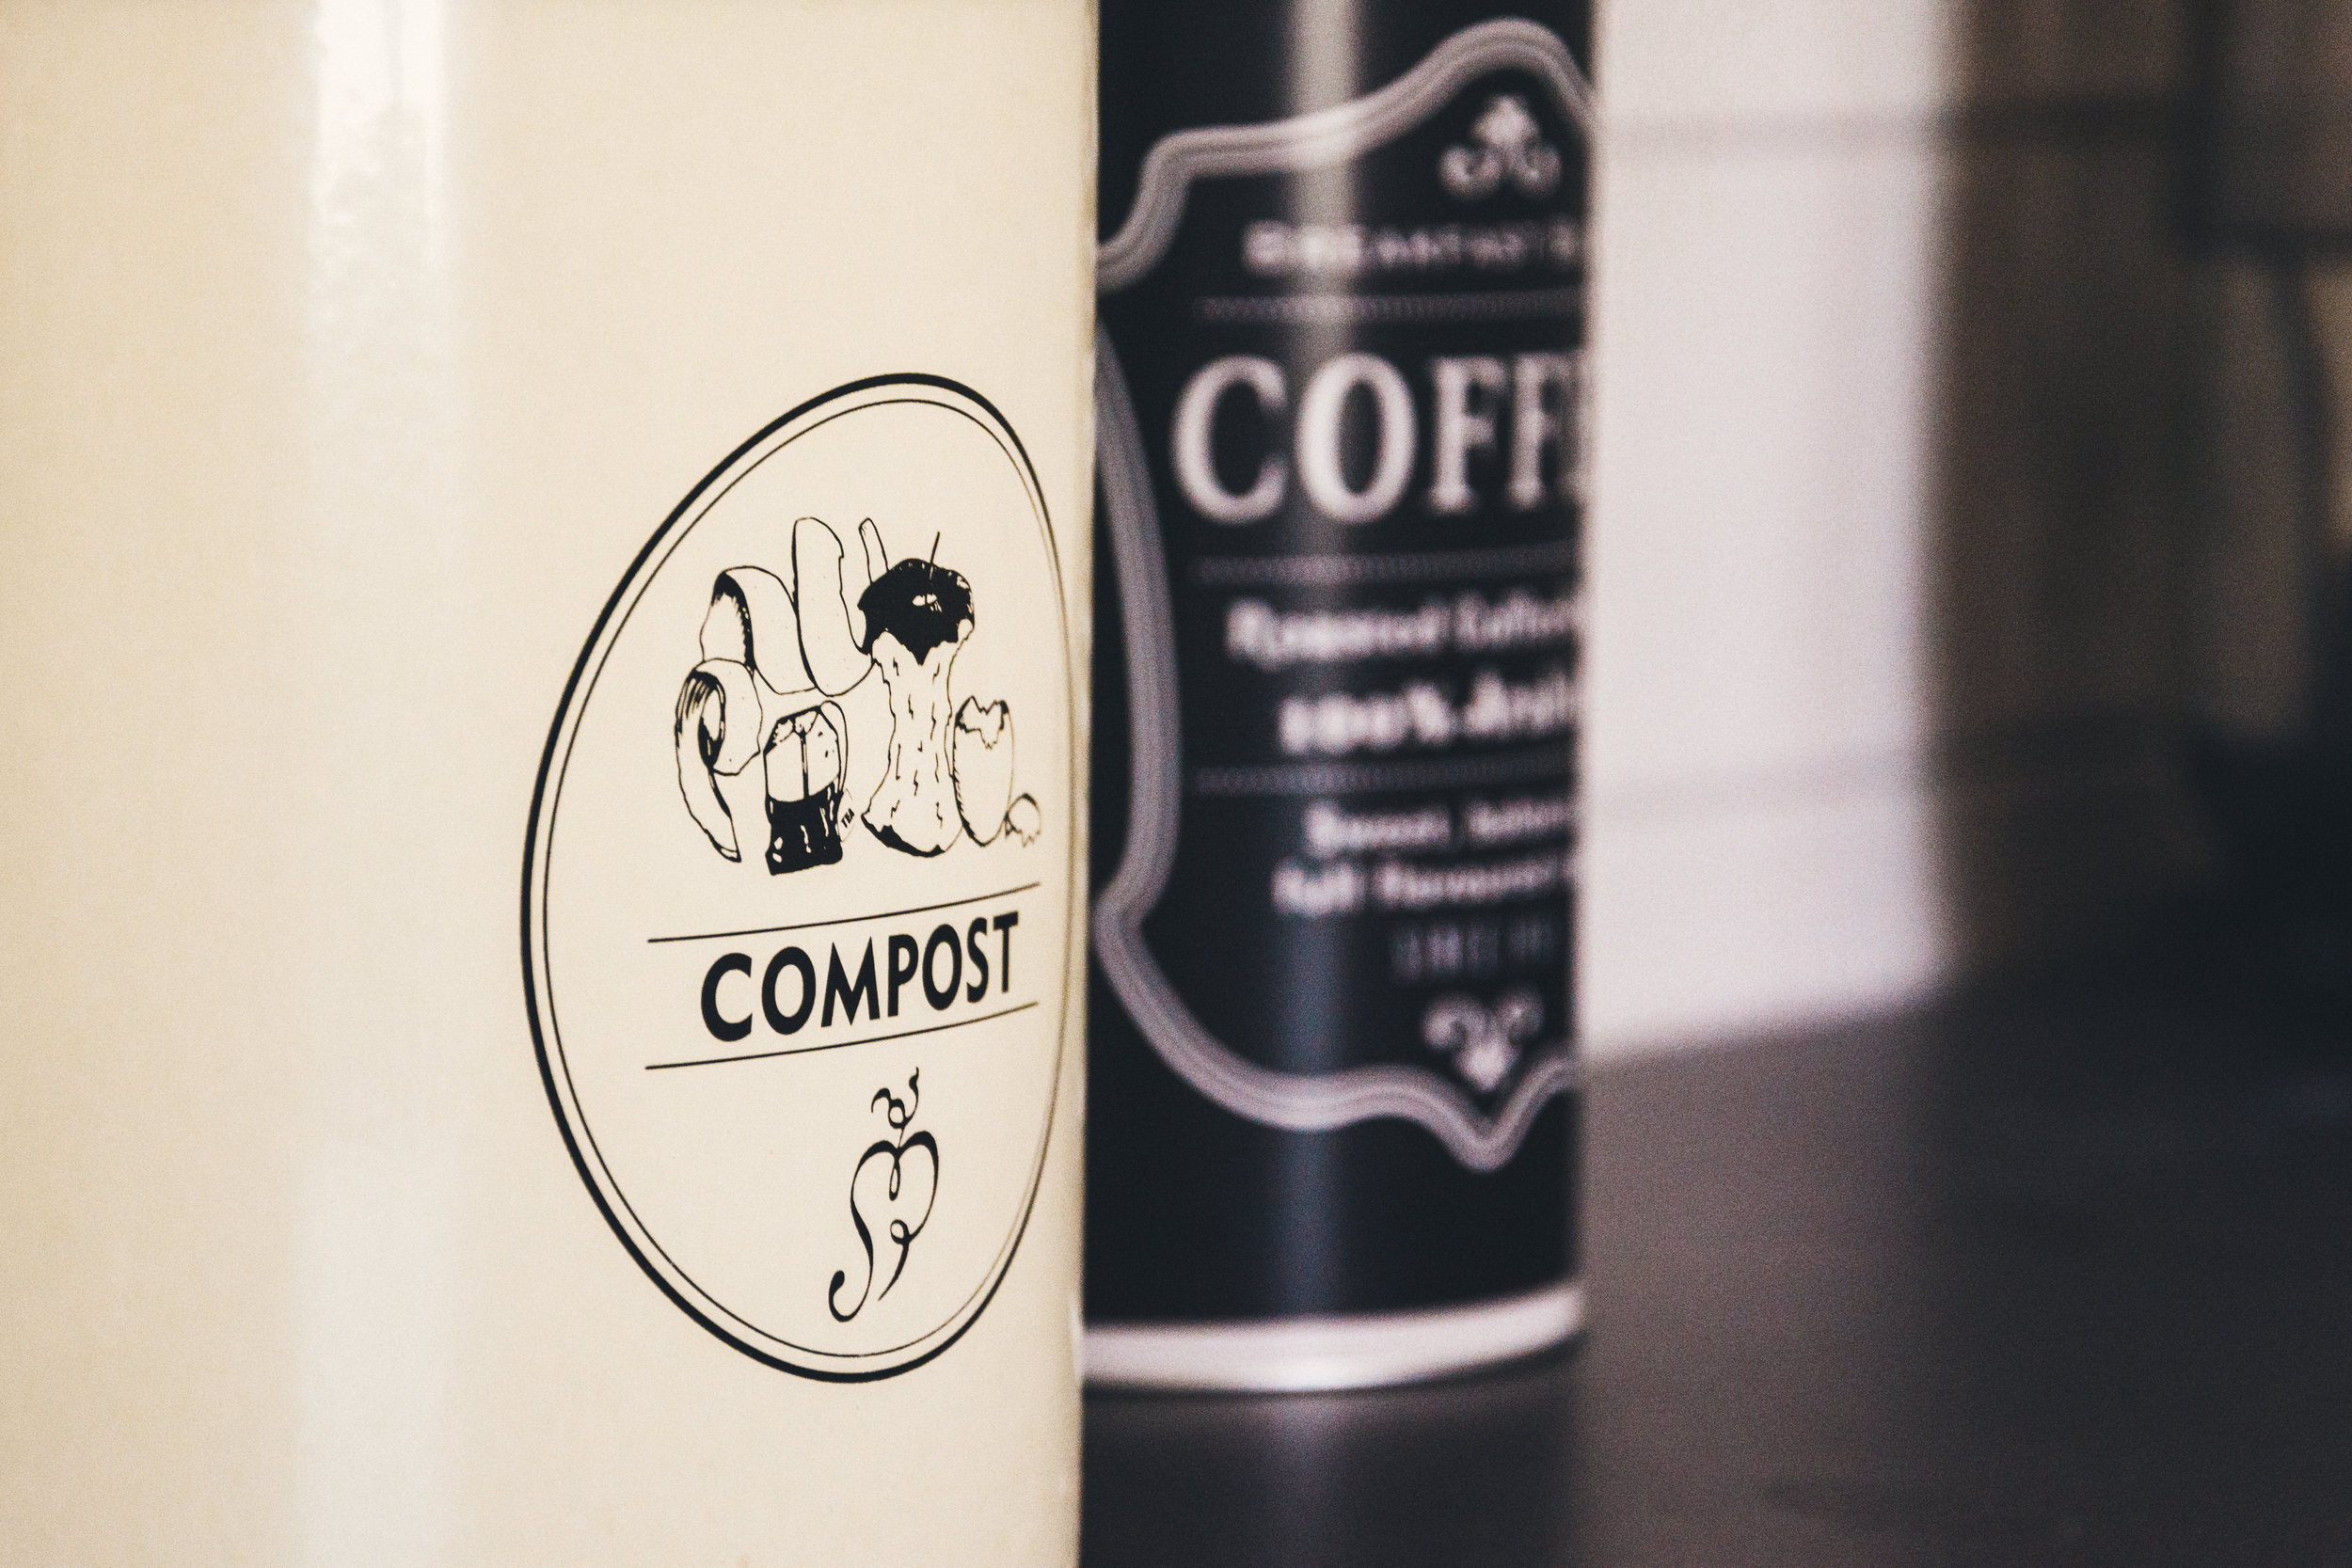 Ivory compost pail beside coffee canister.